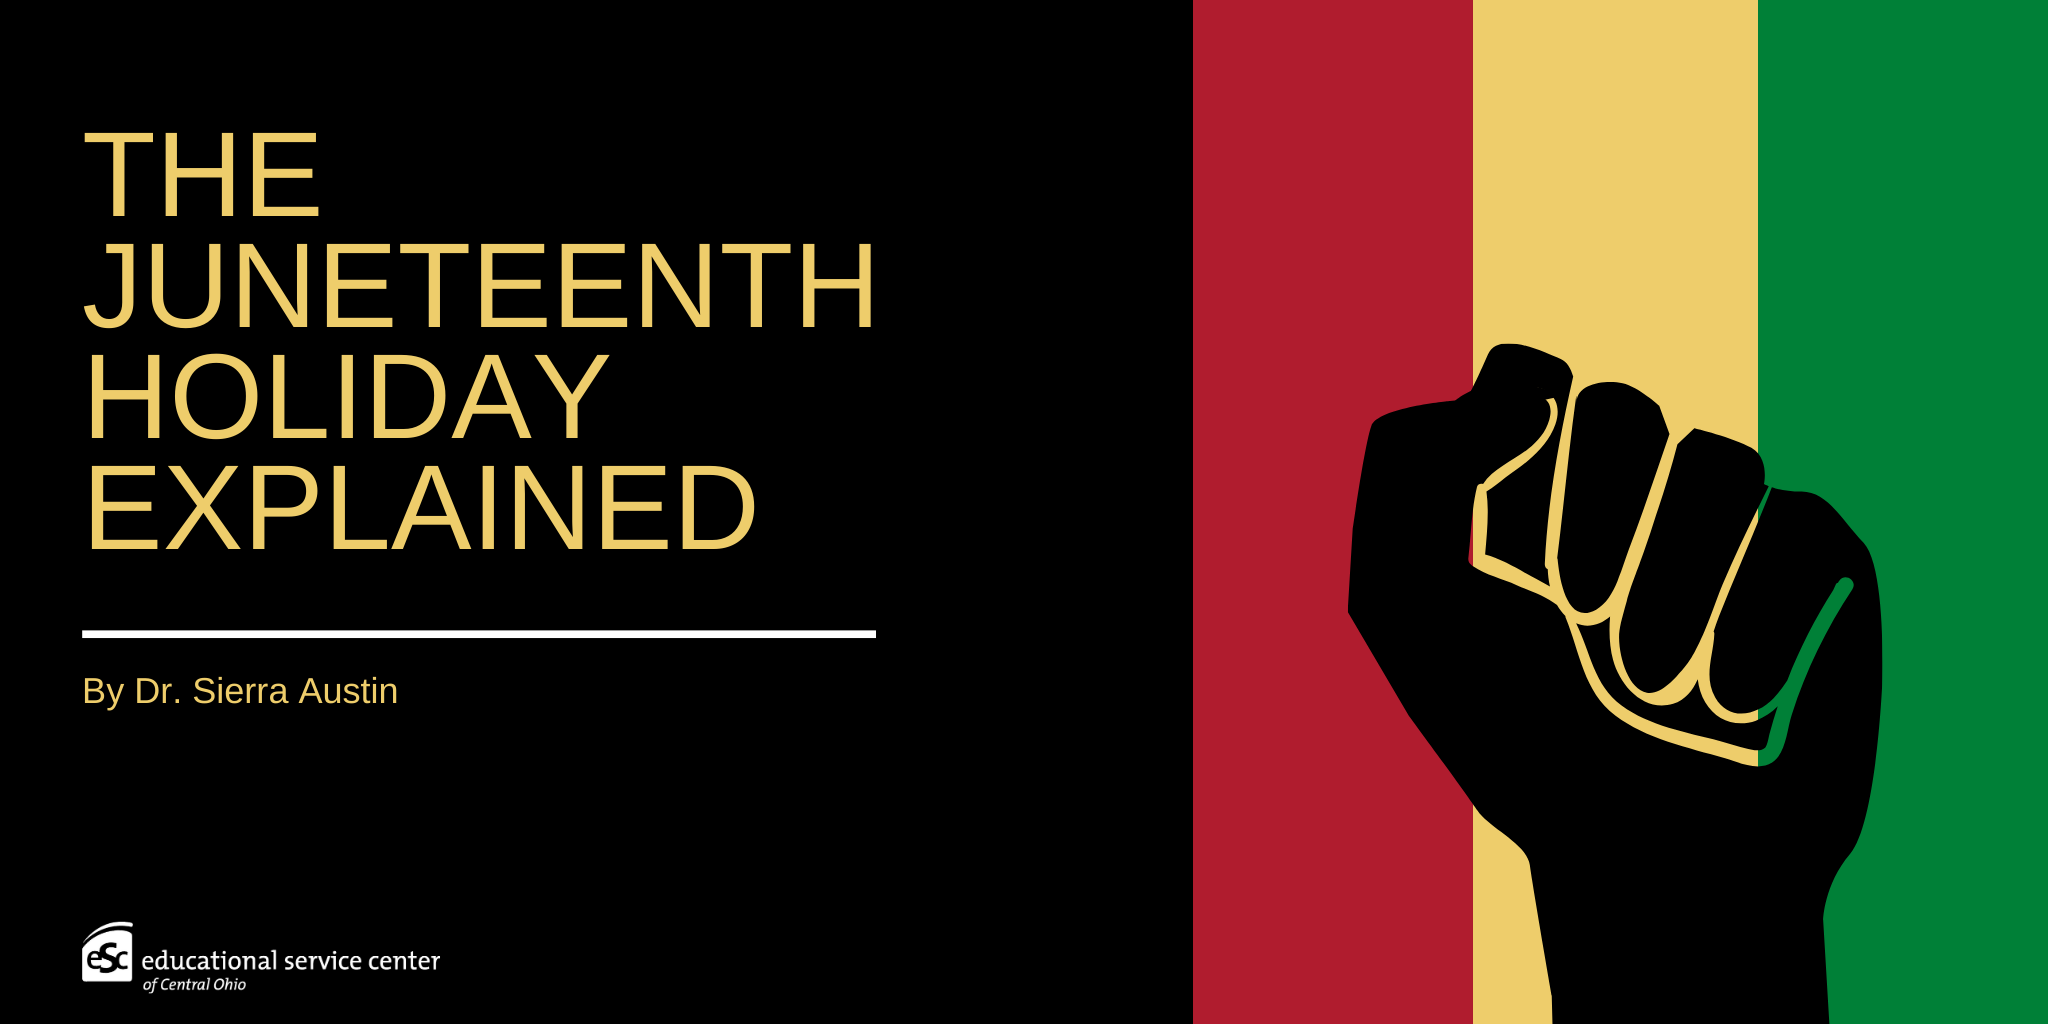 "black, red, yellow, green stripes, ""The Juneteenth holiday explained"", black fist"